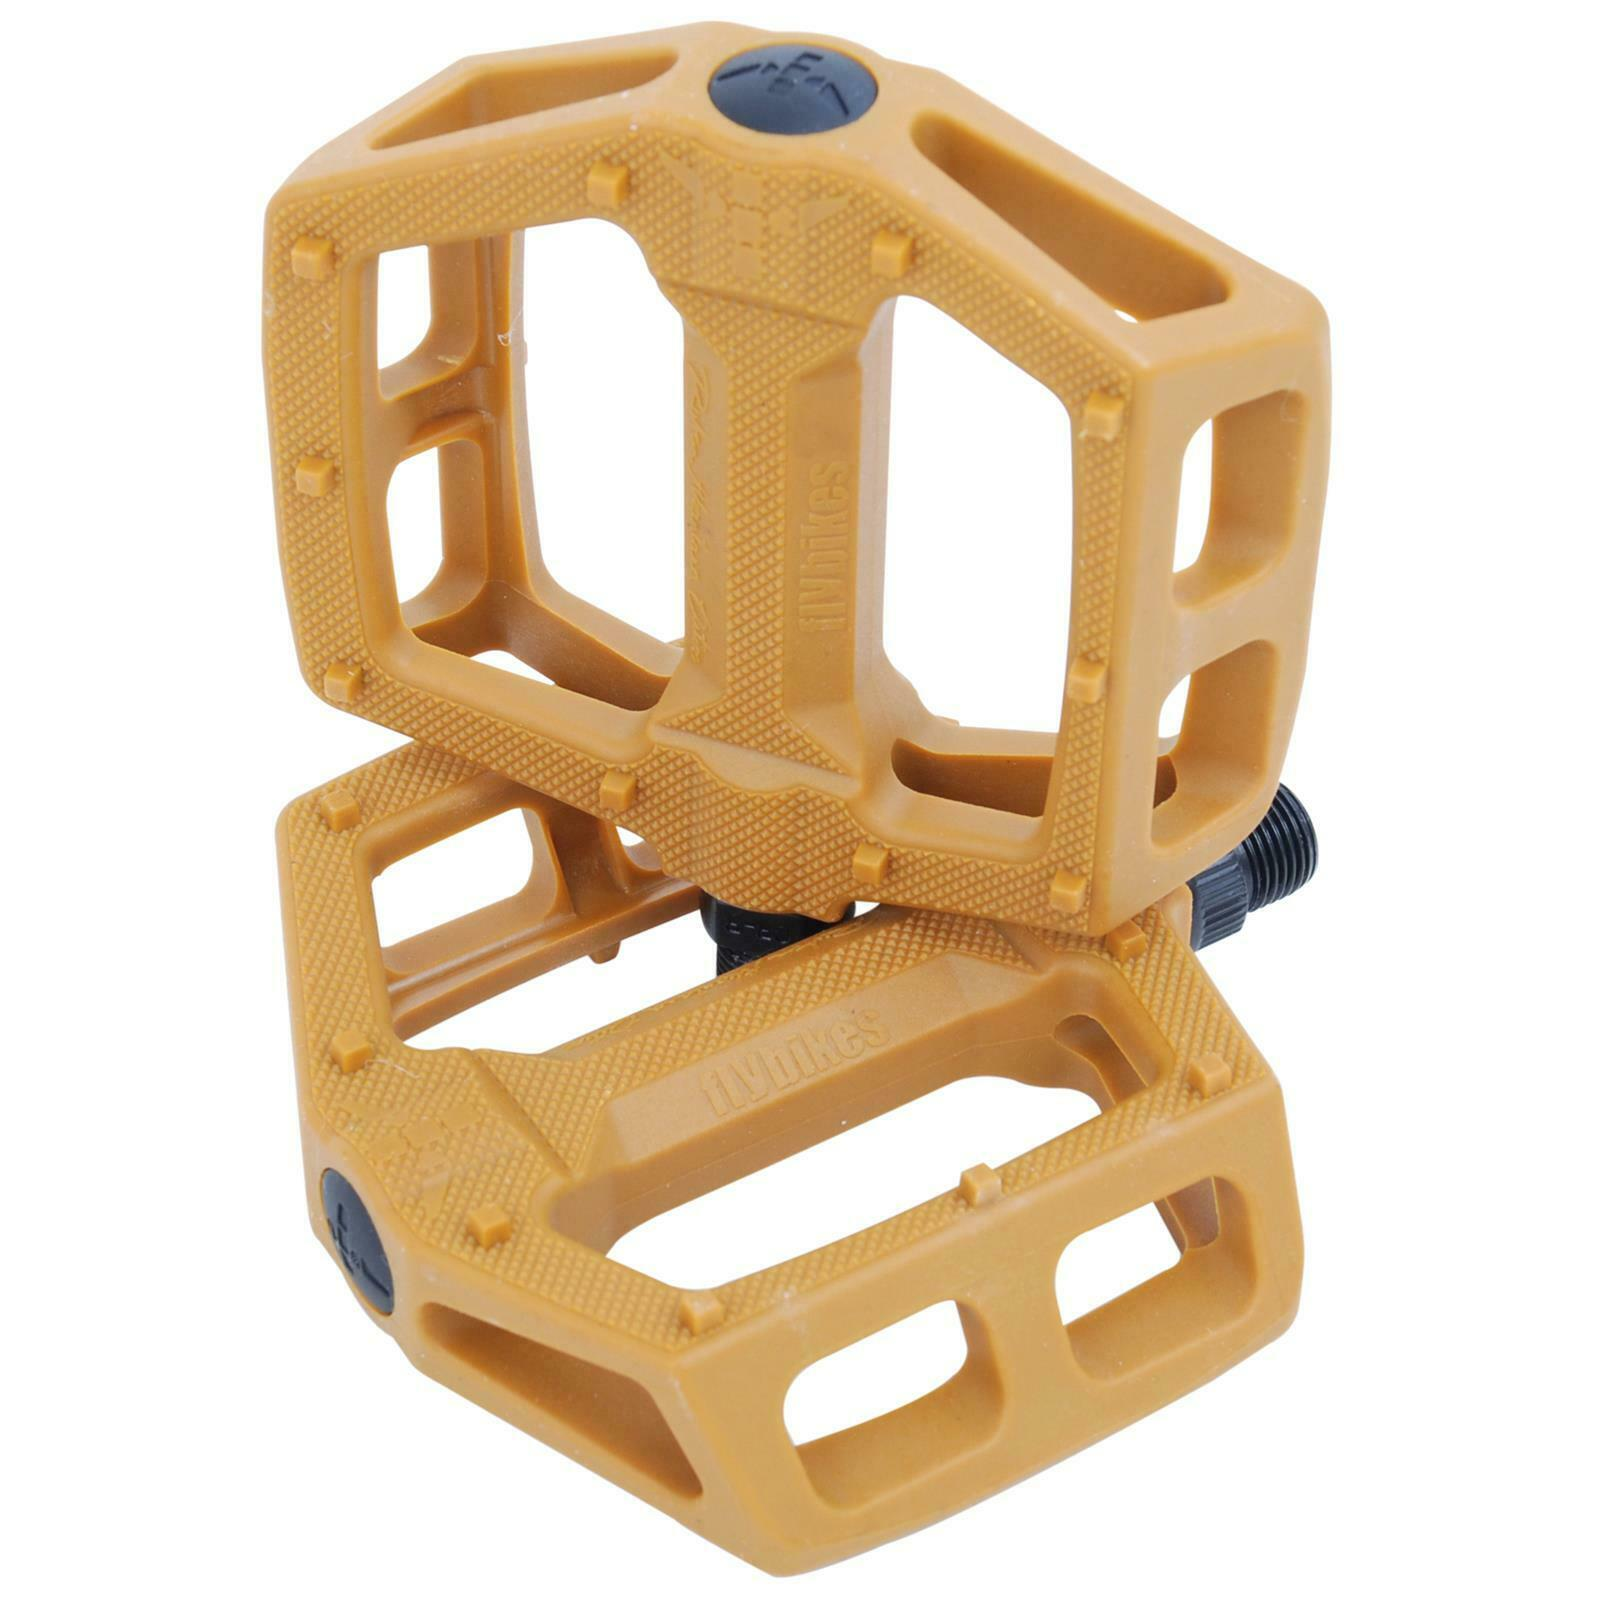 Fly Ruben Pedals £13.99